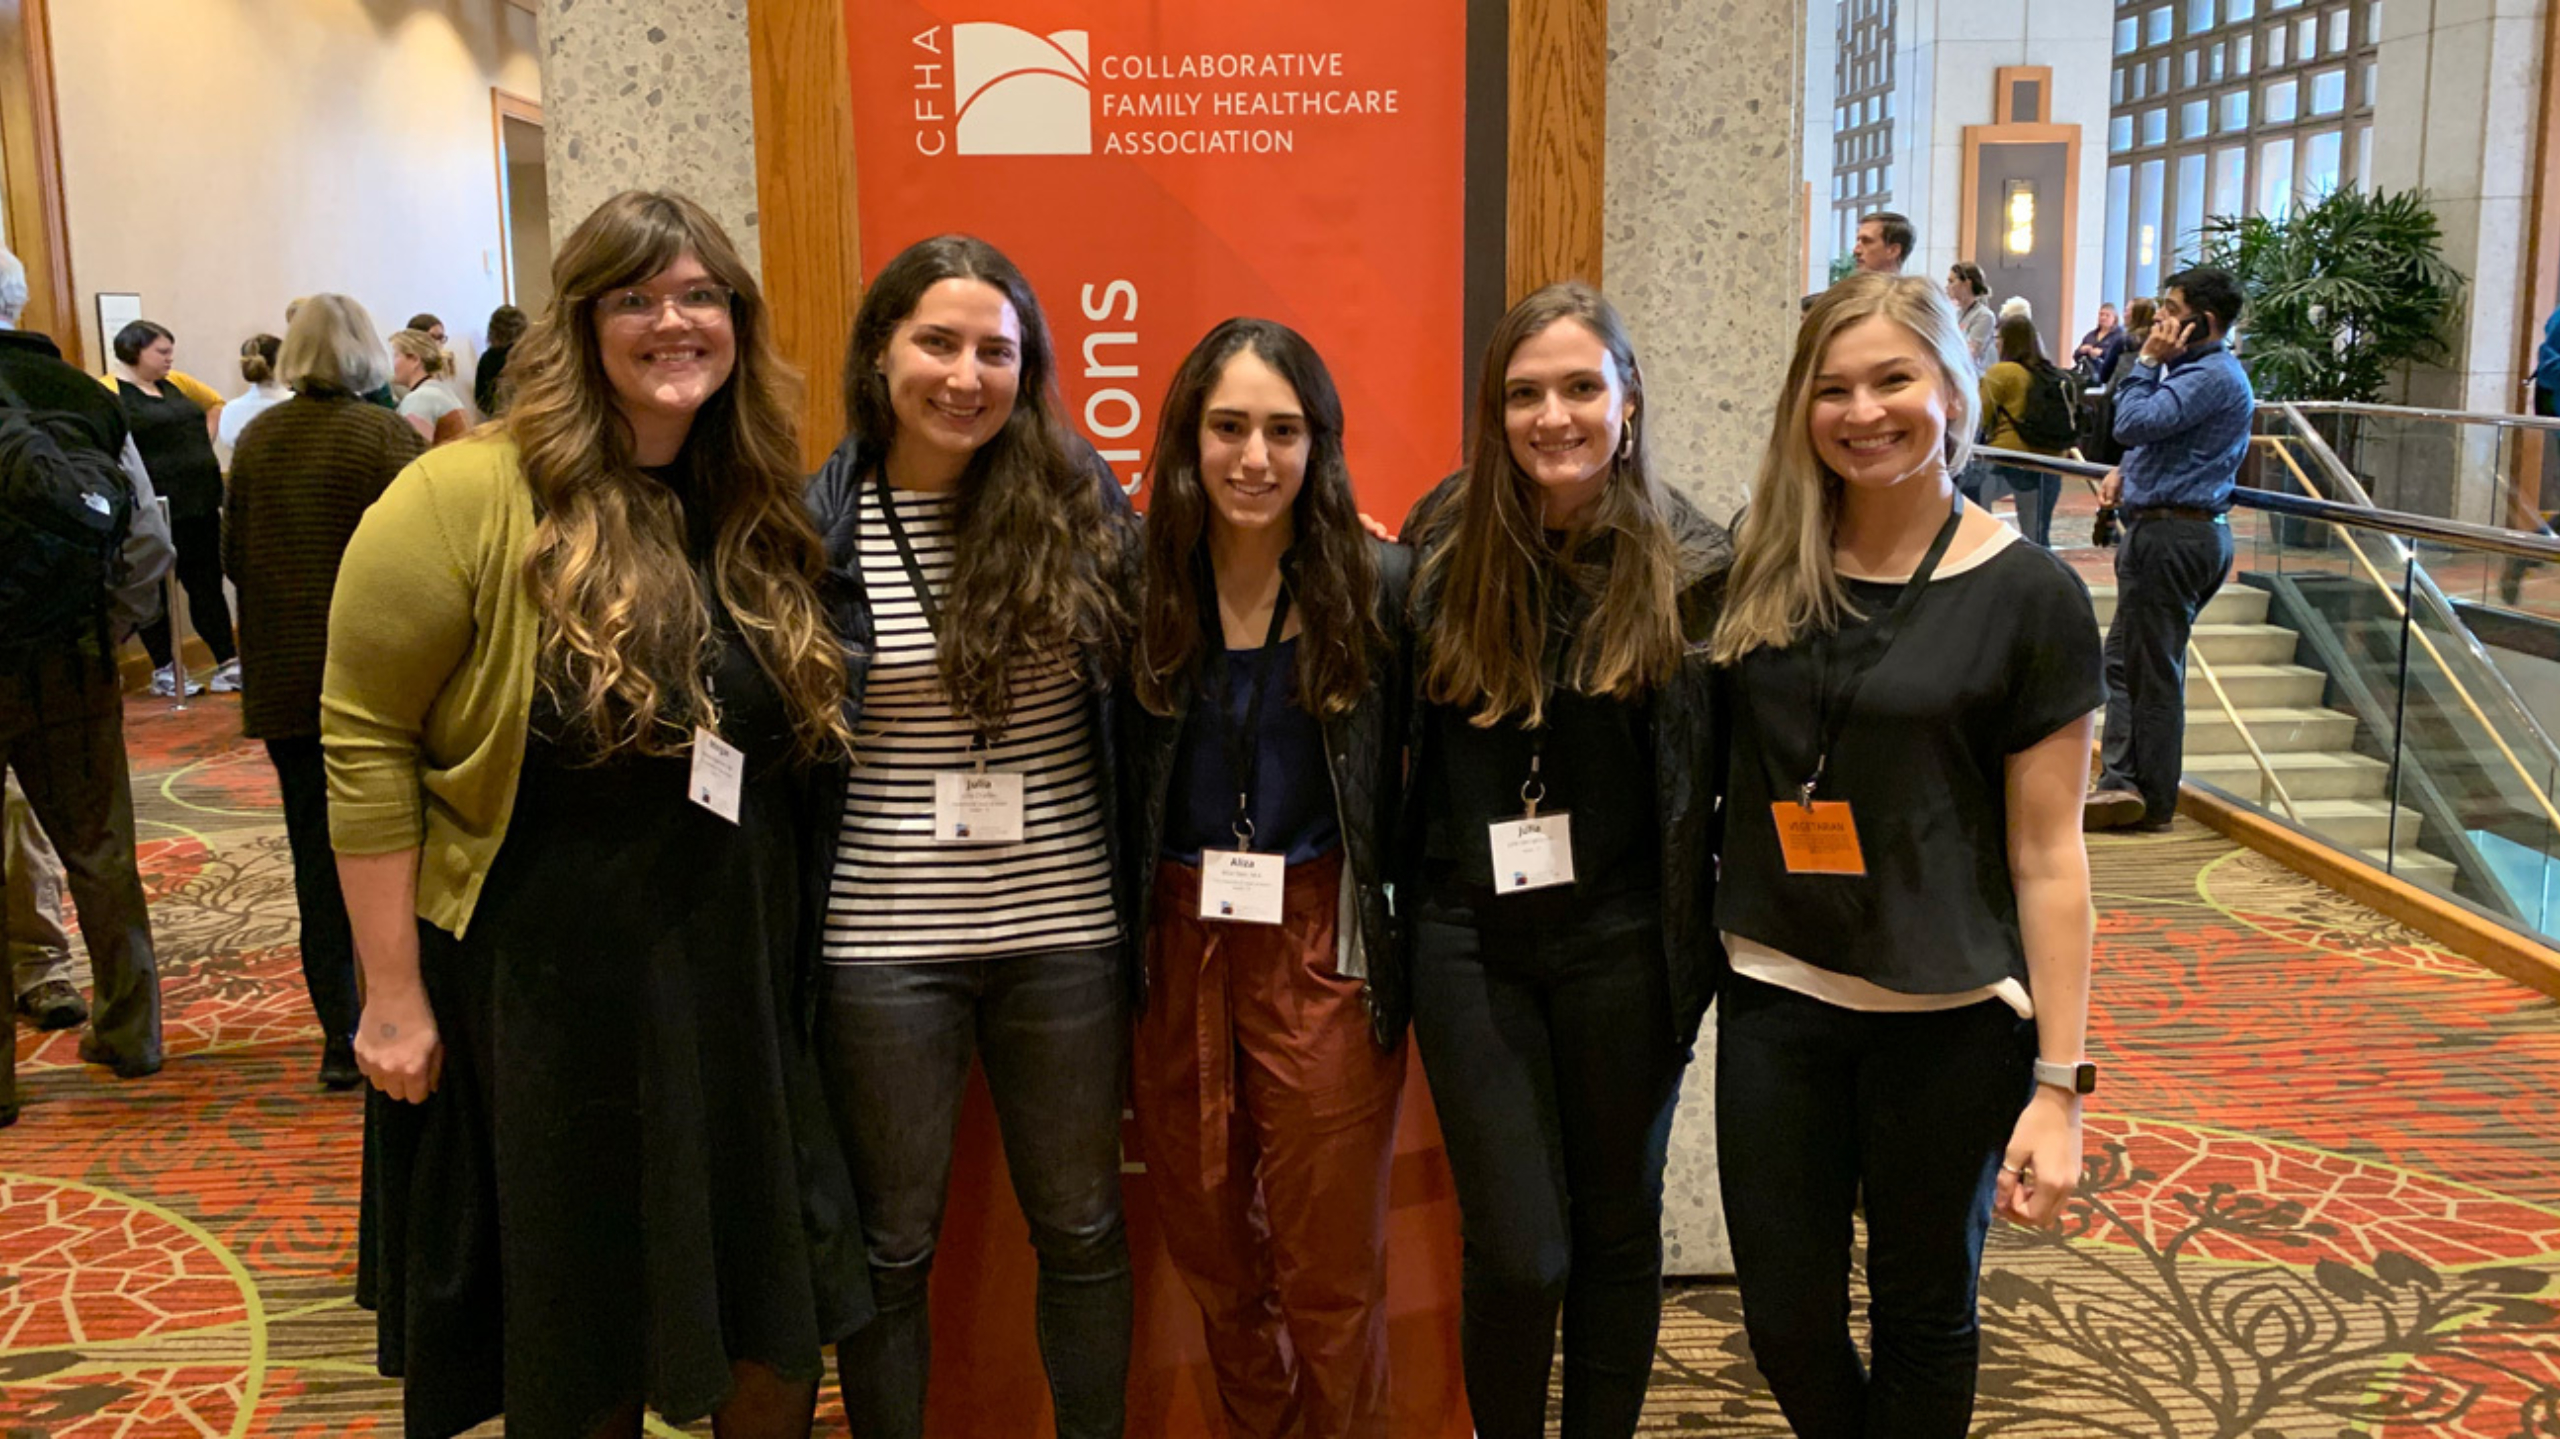 Five women who are part of the Integrated Behavioral Health Scholars program standing in a group together smiling at the camera at a conference.